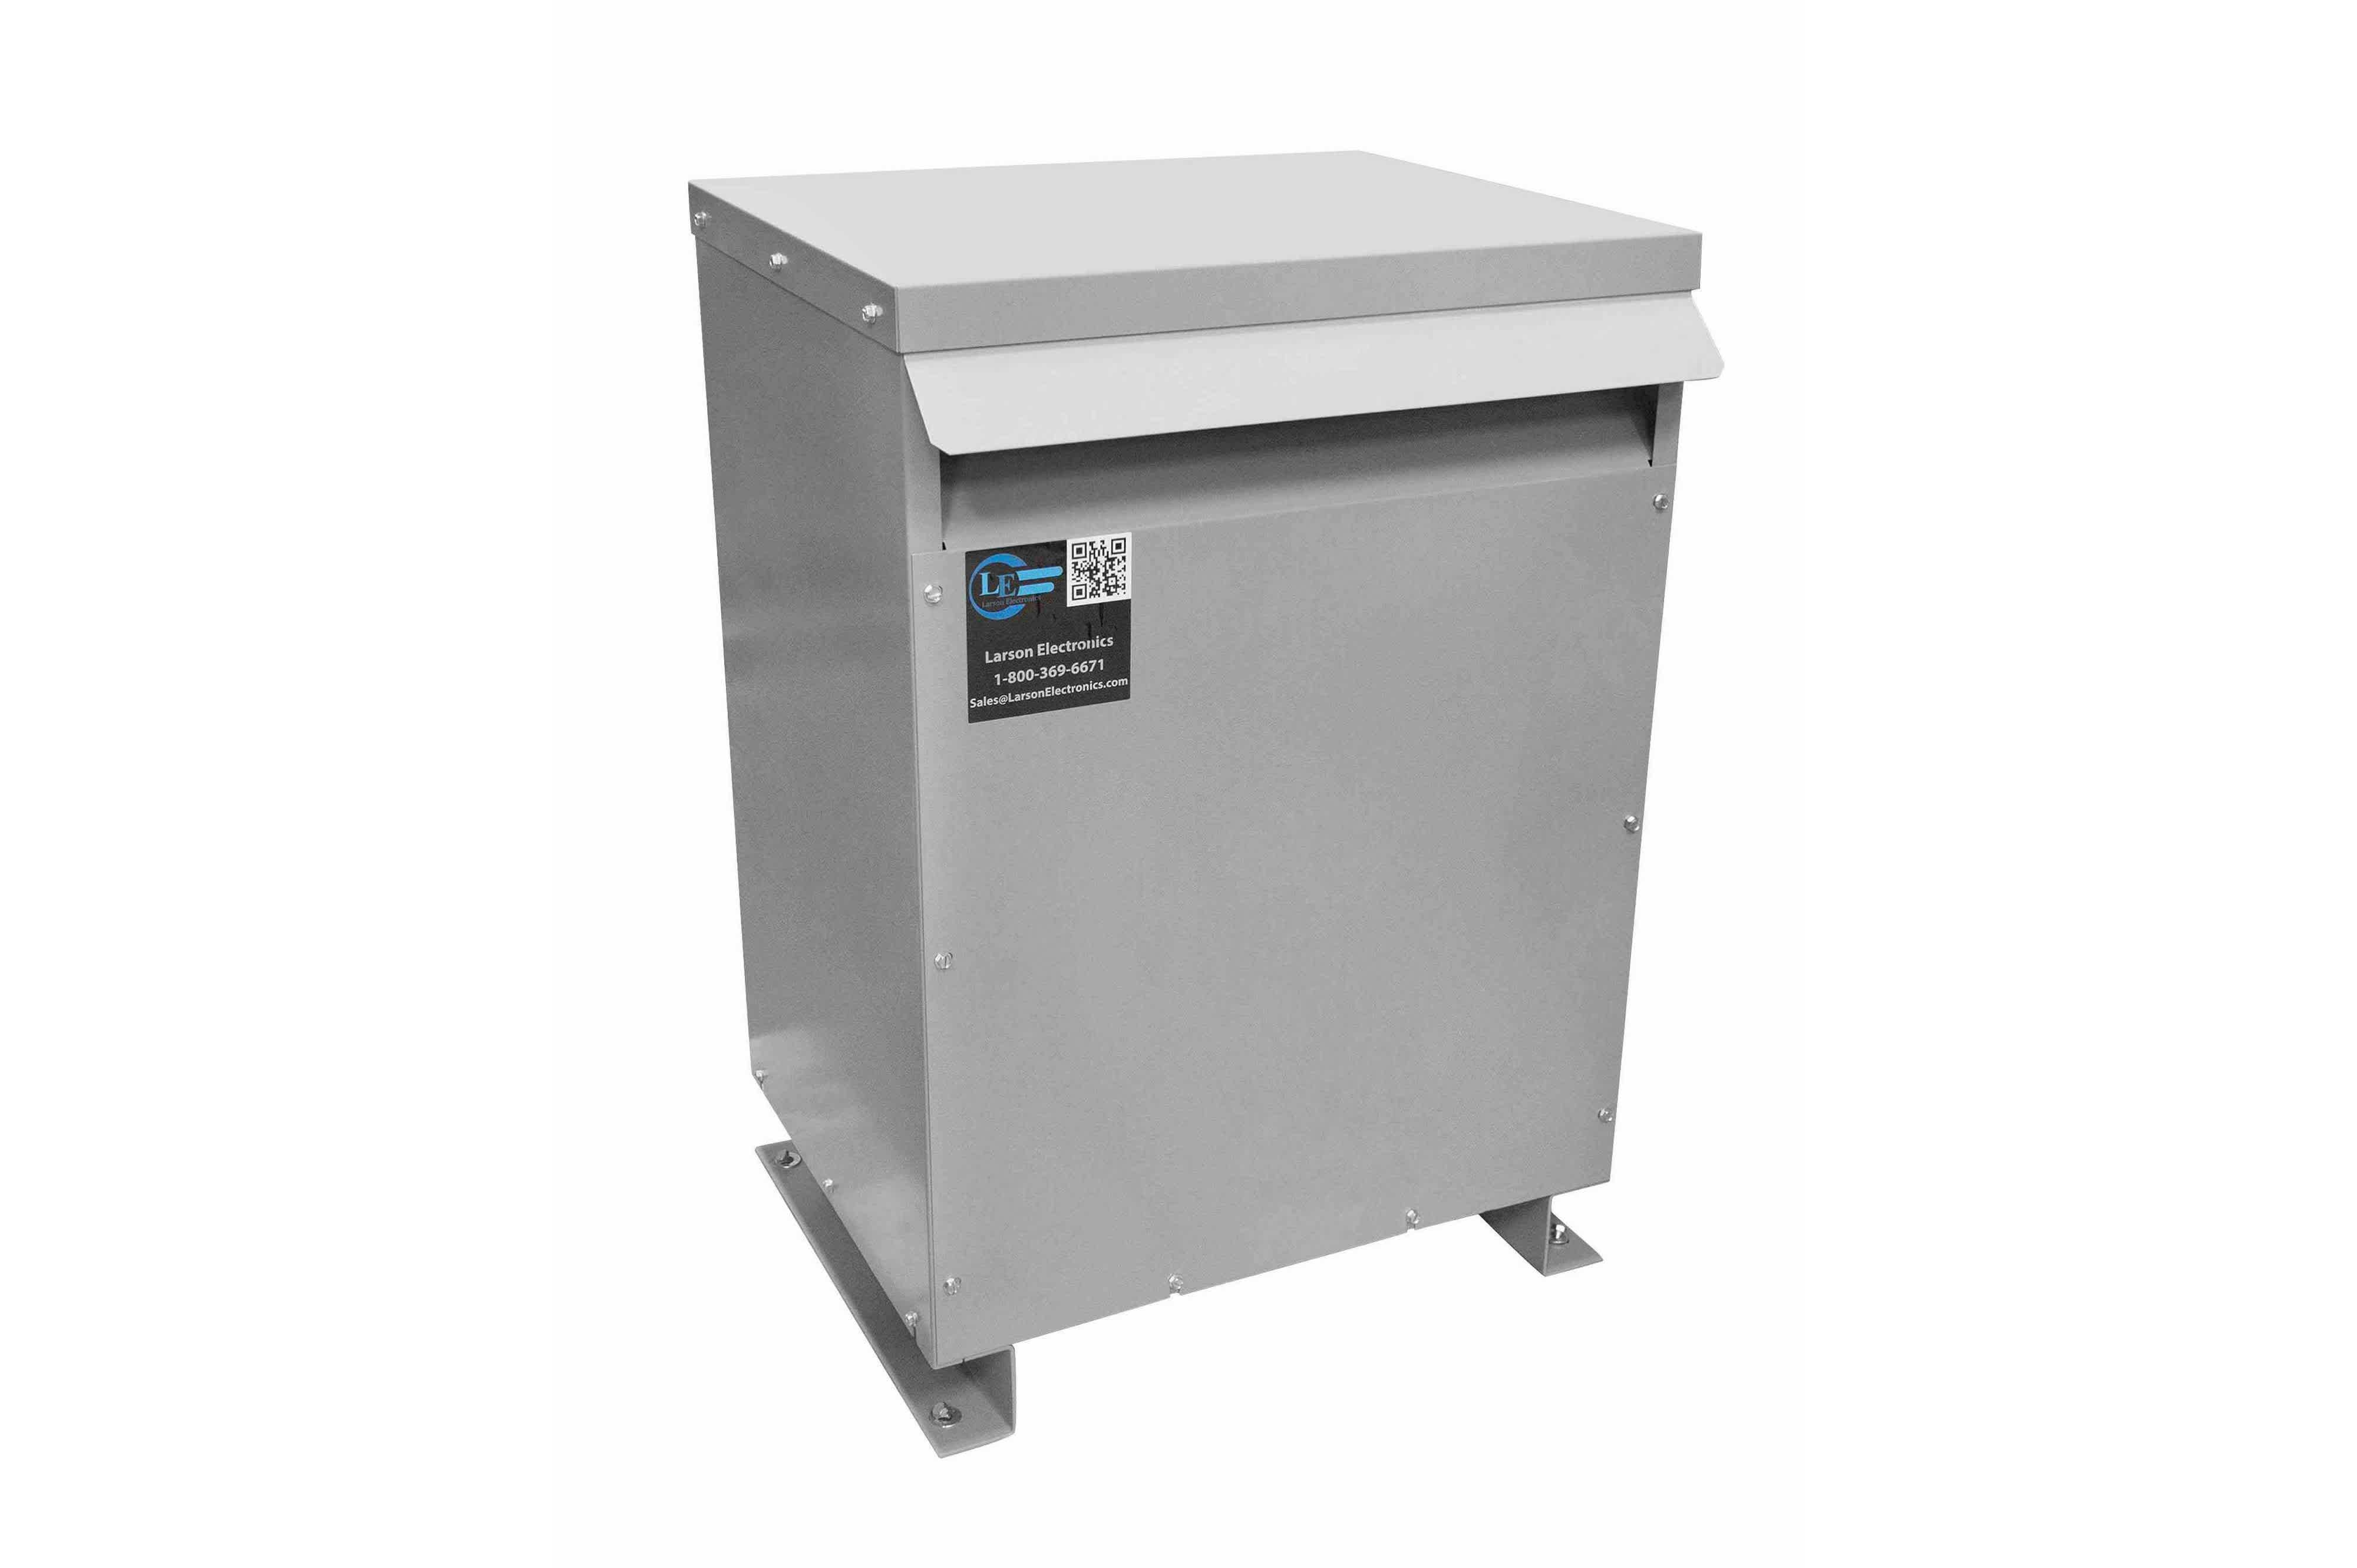 800 kVA 3PH Isolation Transformer, 480V Wye Primary, 415Y/240 Wye-N Secondary, N3R, Ventilated, 60 Hz